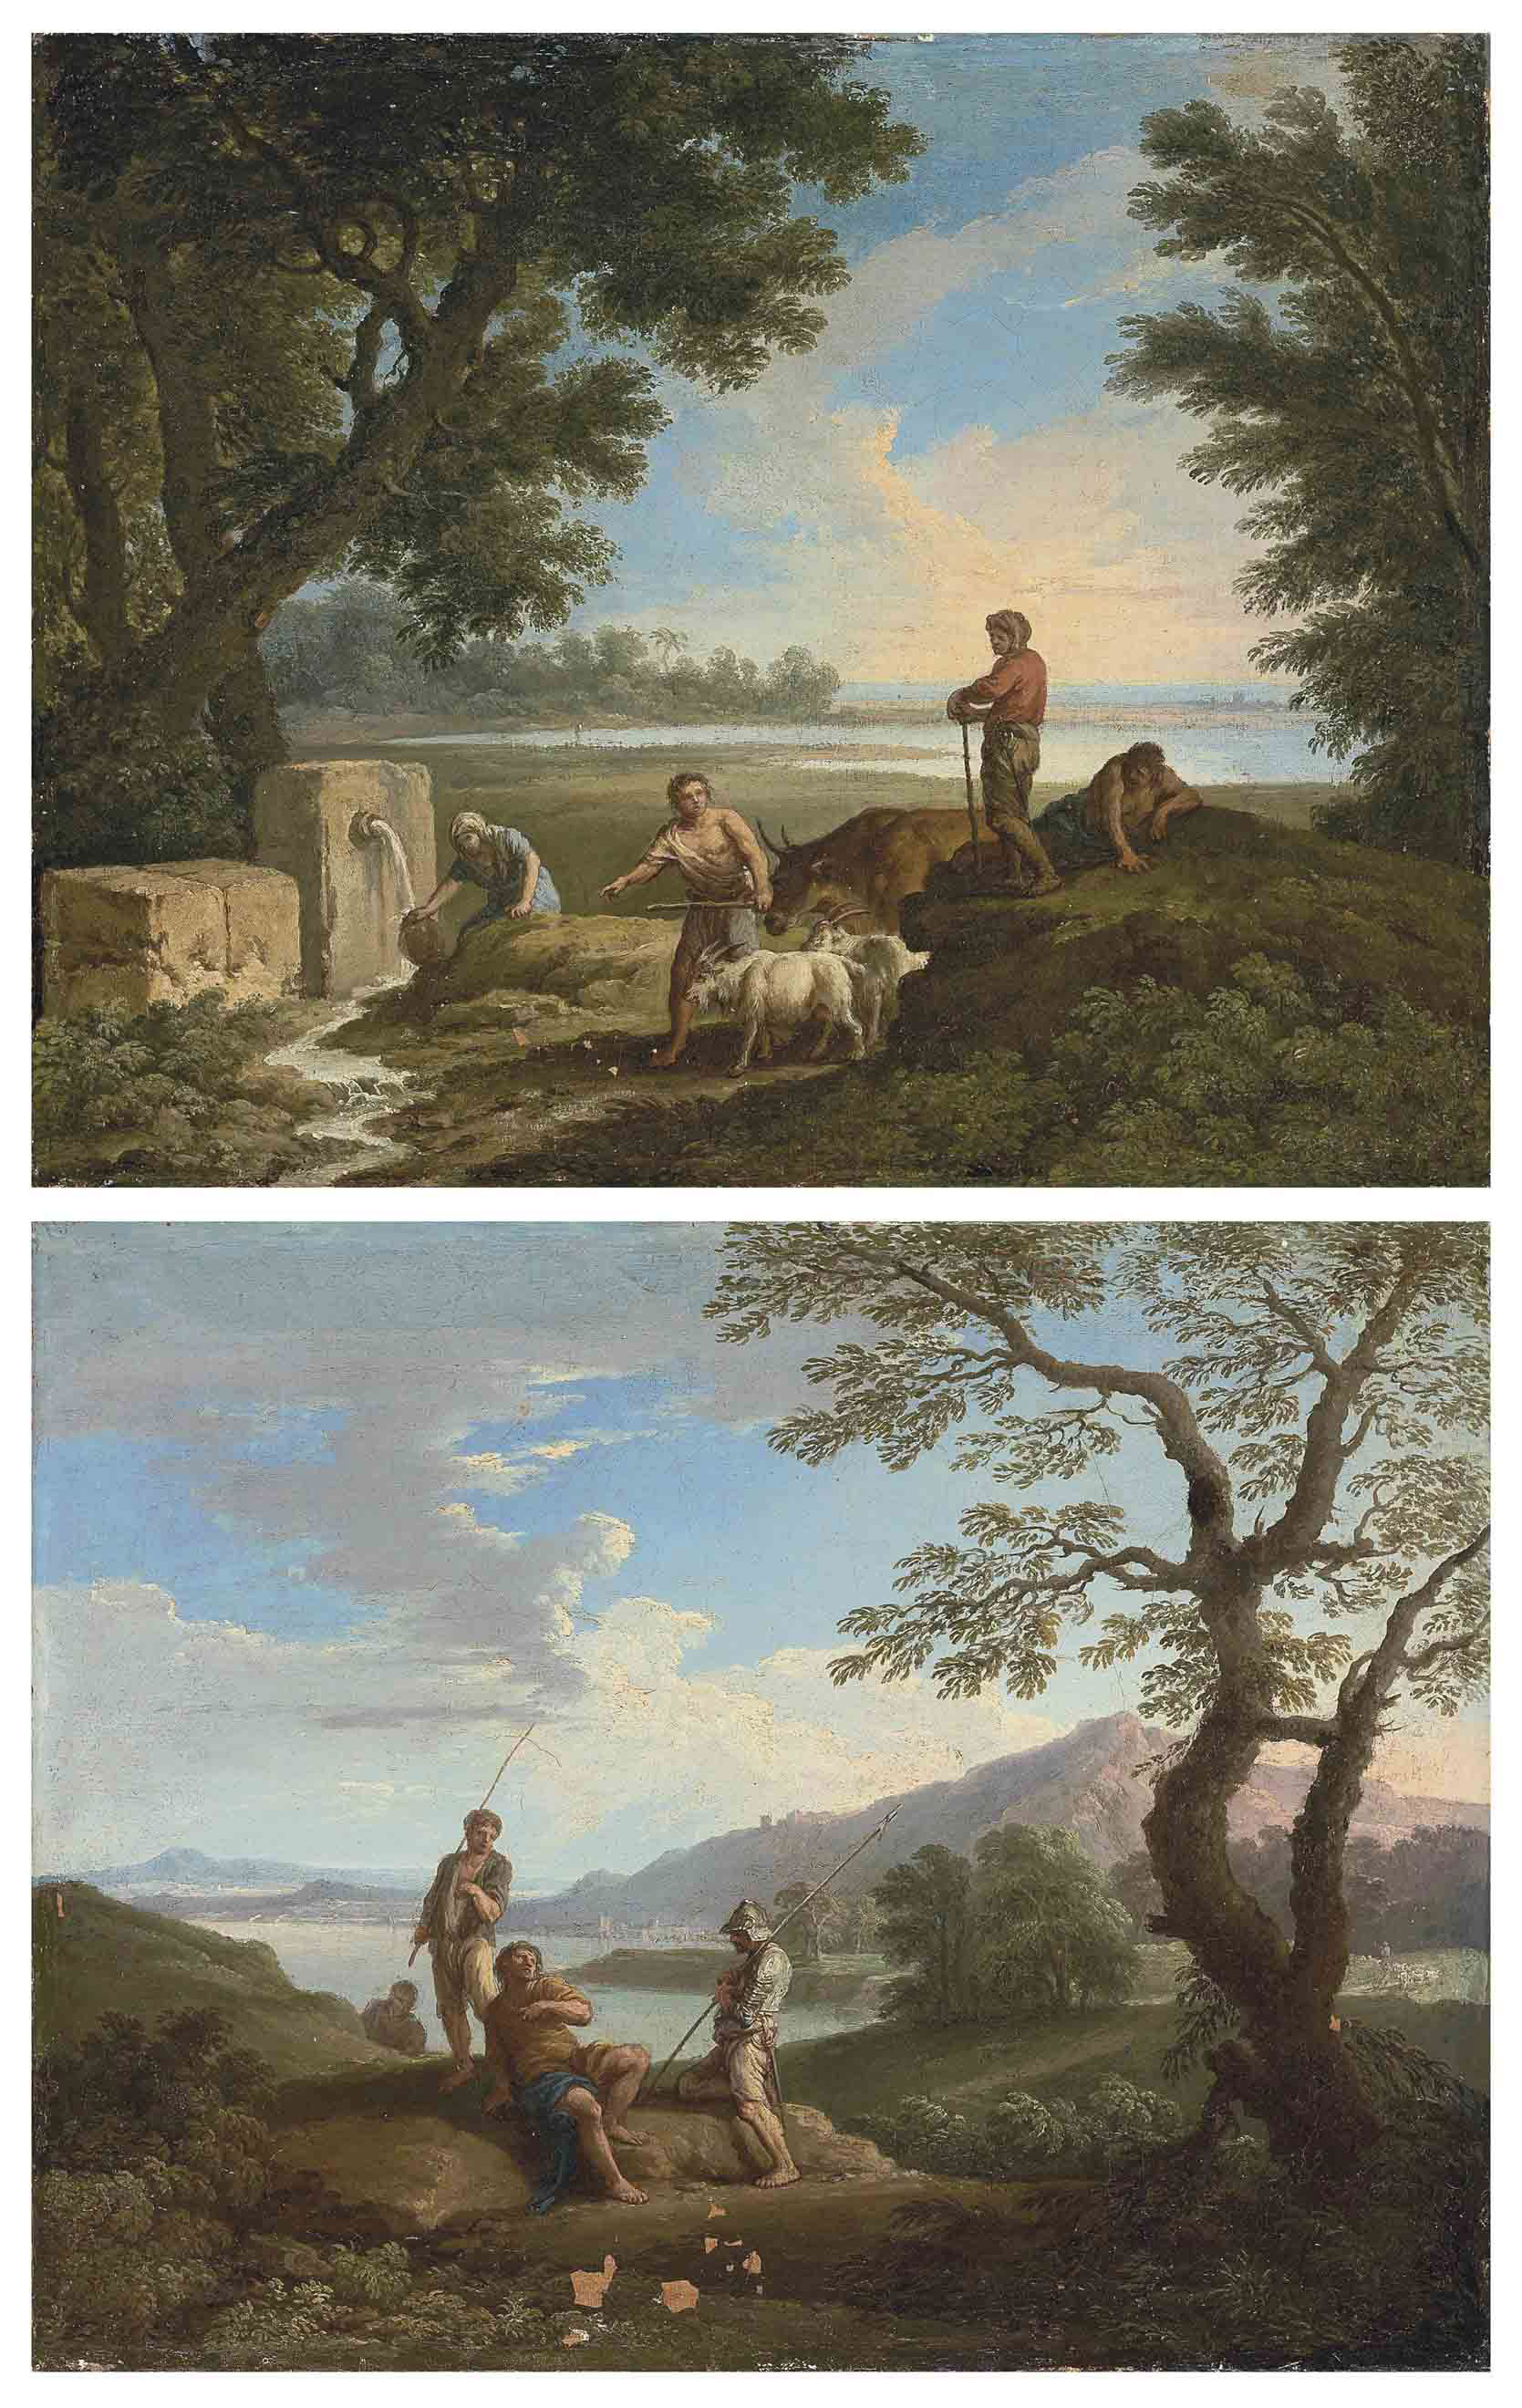 A pastoral landscape, with a woman at a well, goatherds and the sea beyond; and A coastal landscape with bandits accosting a traveller